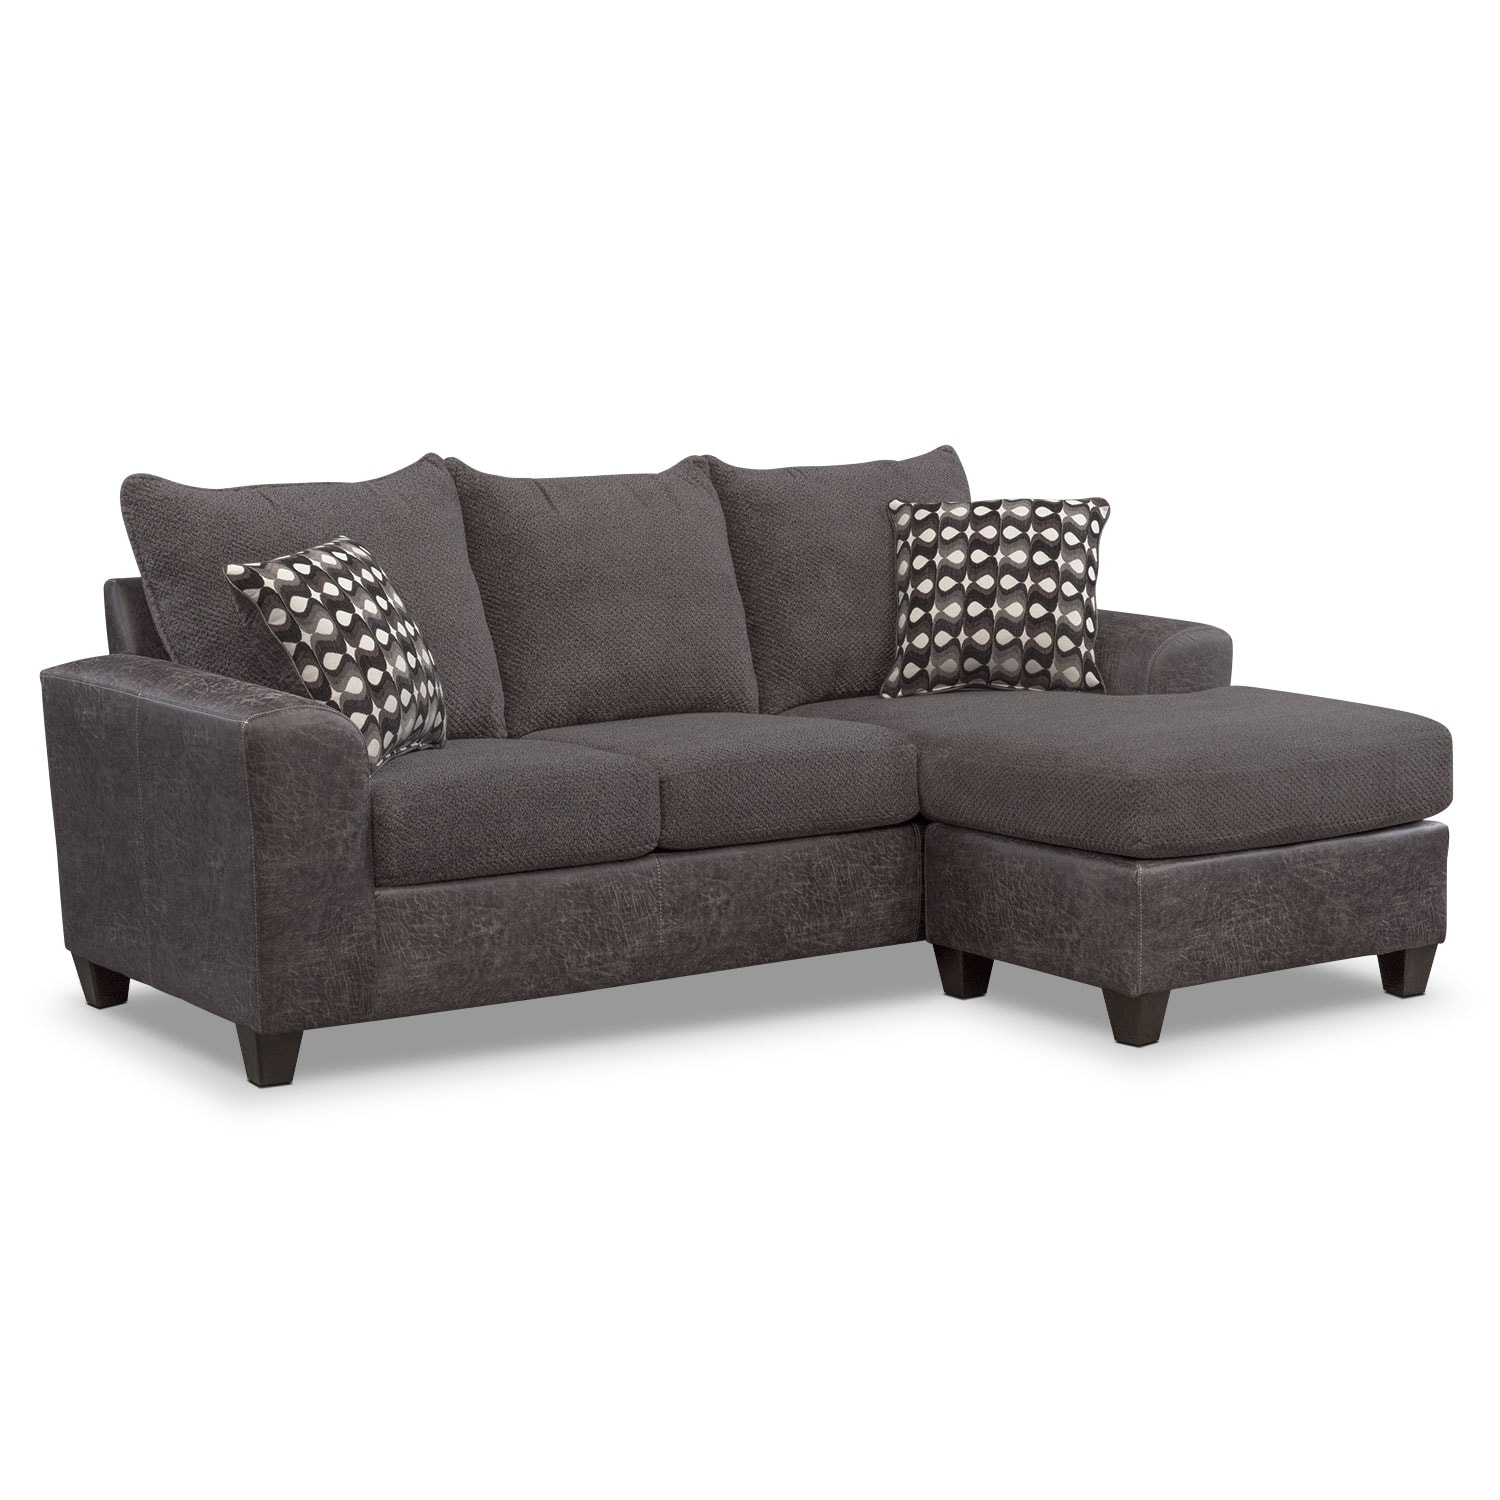 Brando Sofa With Chaise Smoke American Signature Furniture